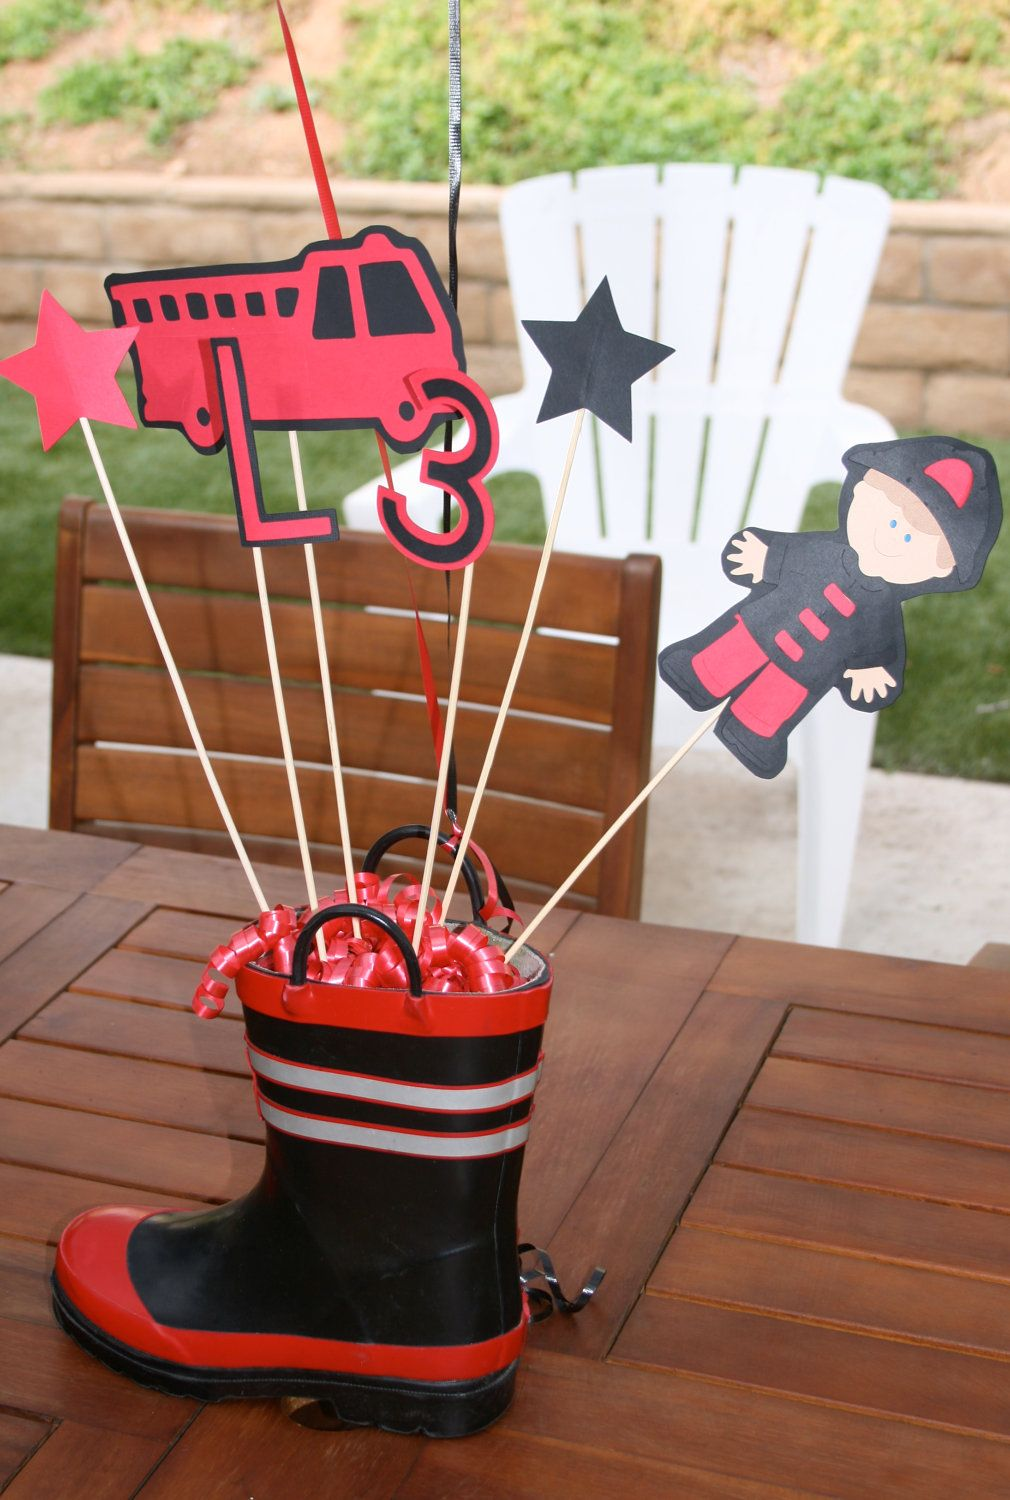 Fire truck man centerpiece custom for your lil